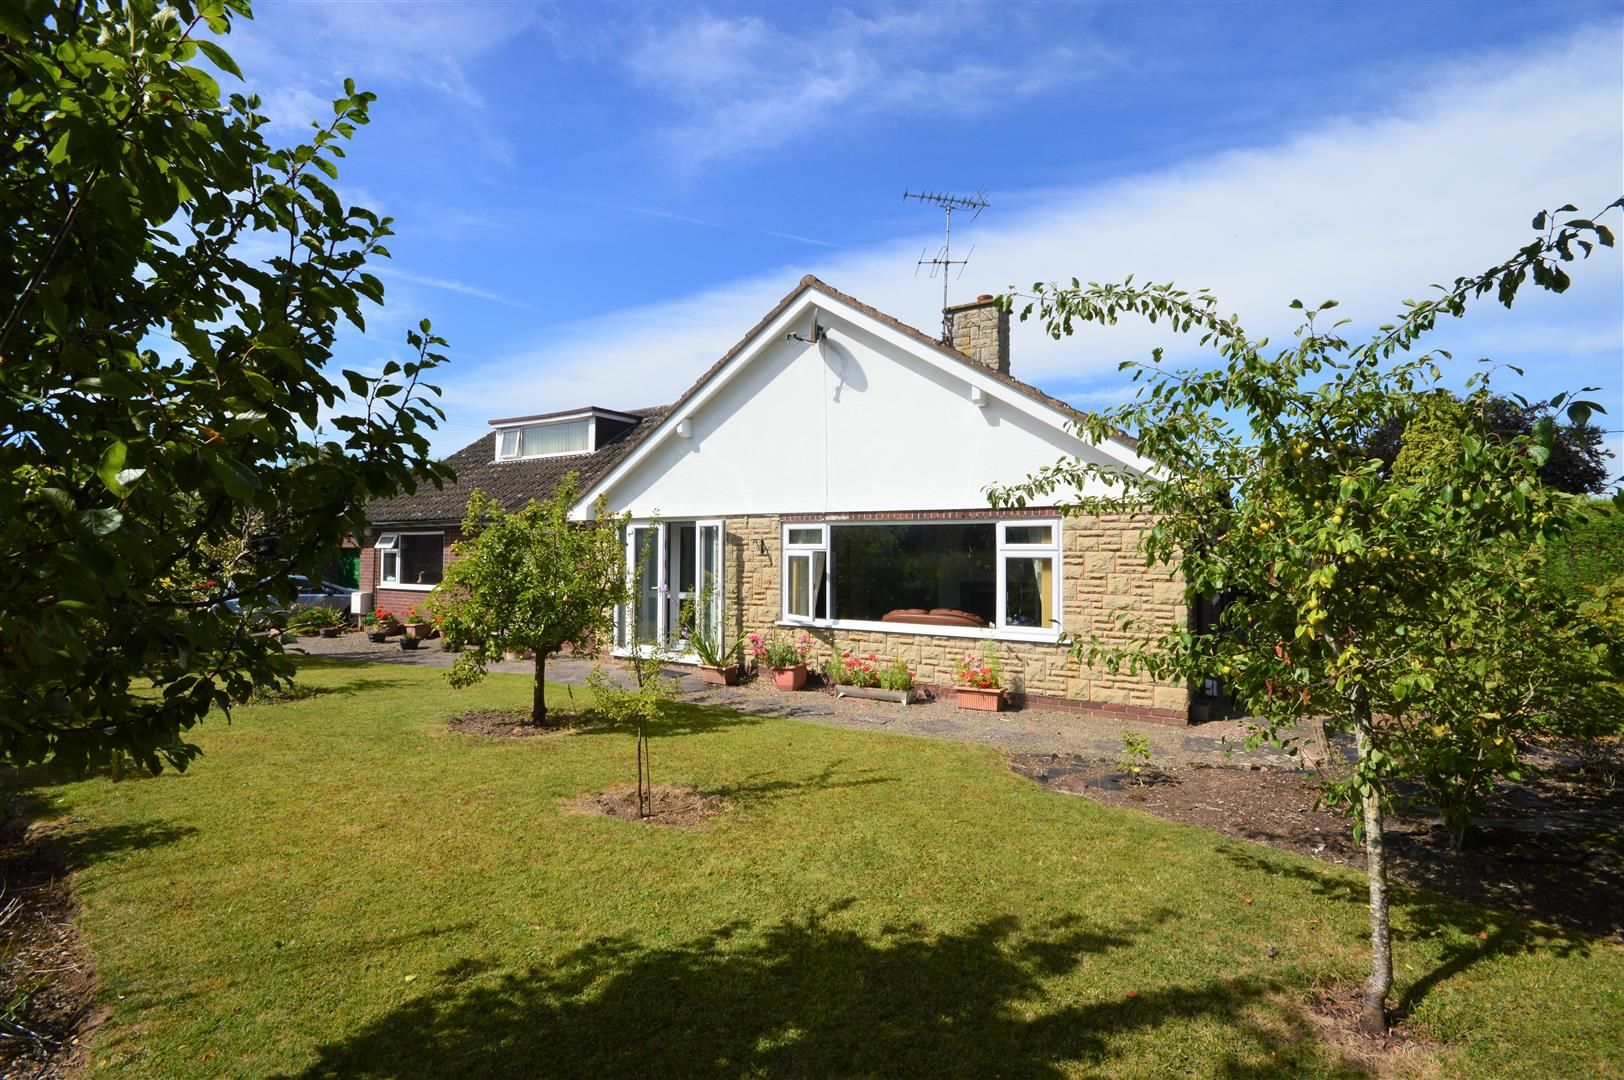 4 bed detached-bungalow for sale in Bodenham - Property Image 1